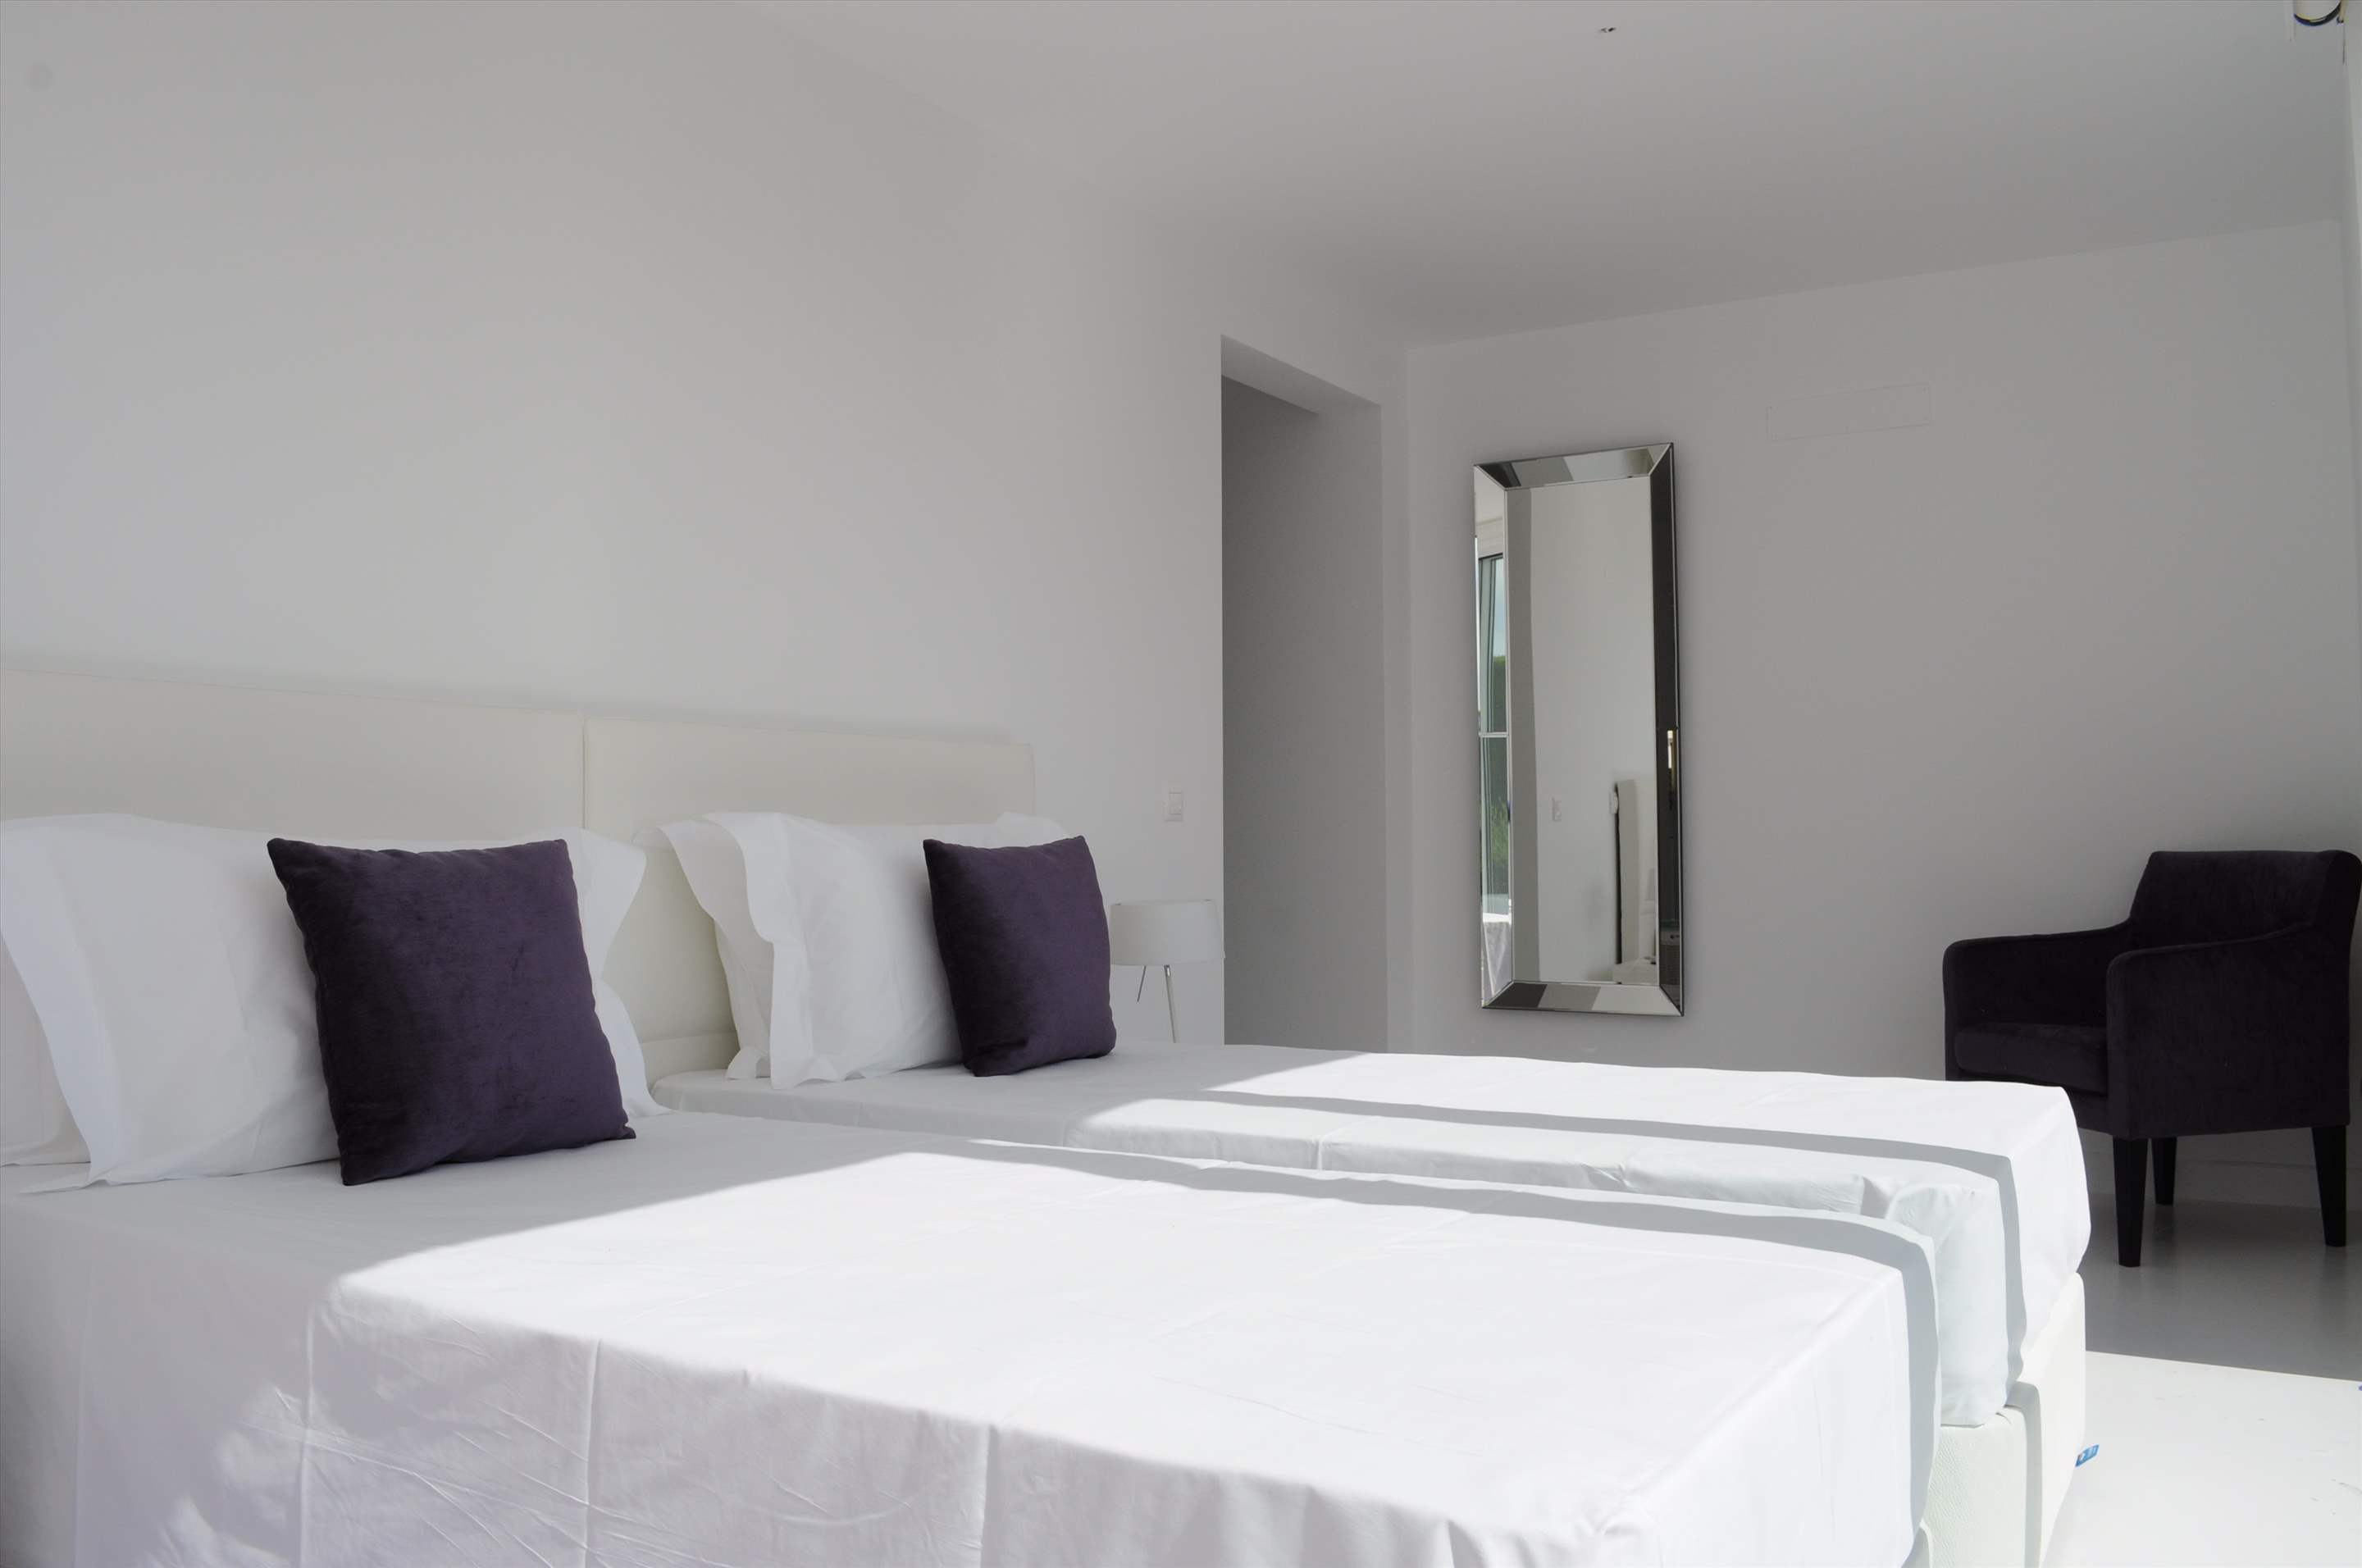 Martinhal Luxury Villa No.6, 3 bedroom villa in Martinhal Sagres, Algarve Photo #6